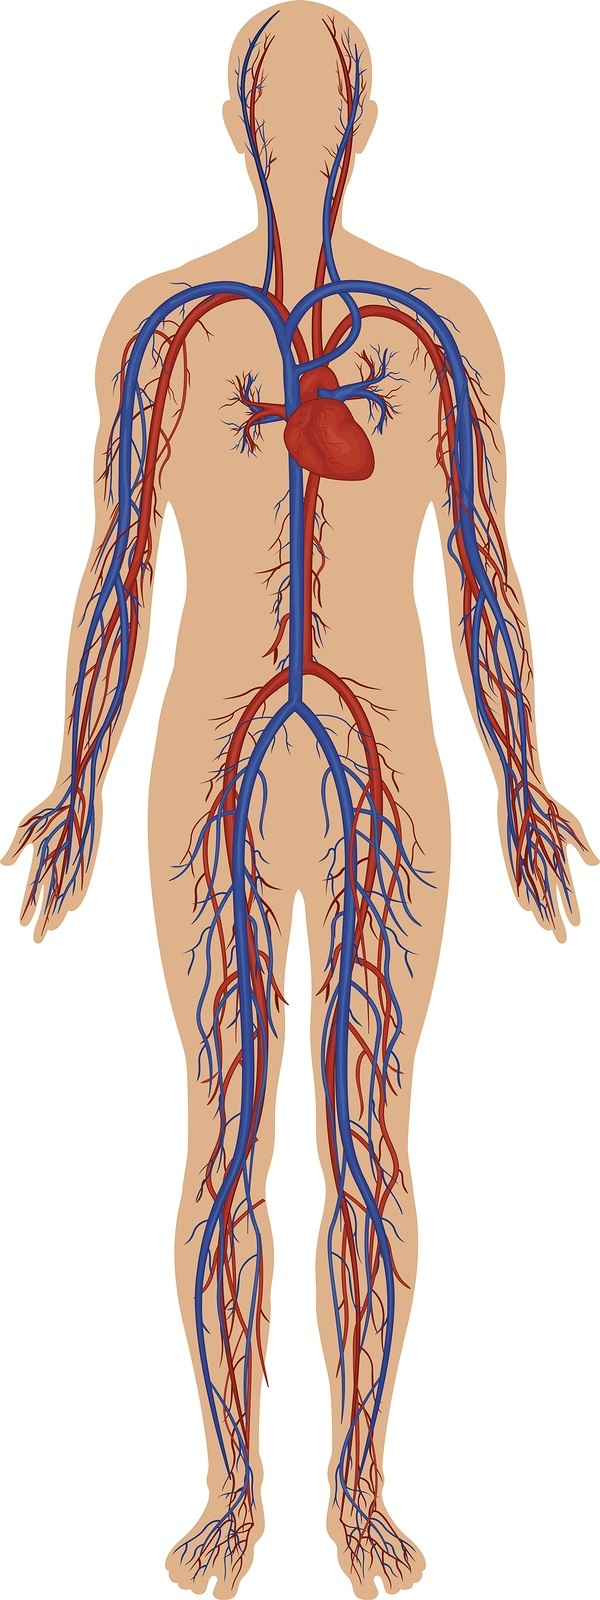 High detail illustration of the human circulatory system